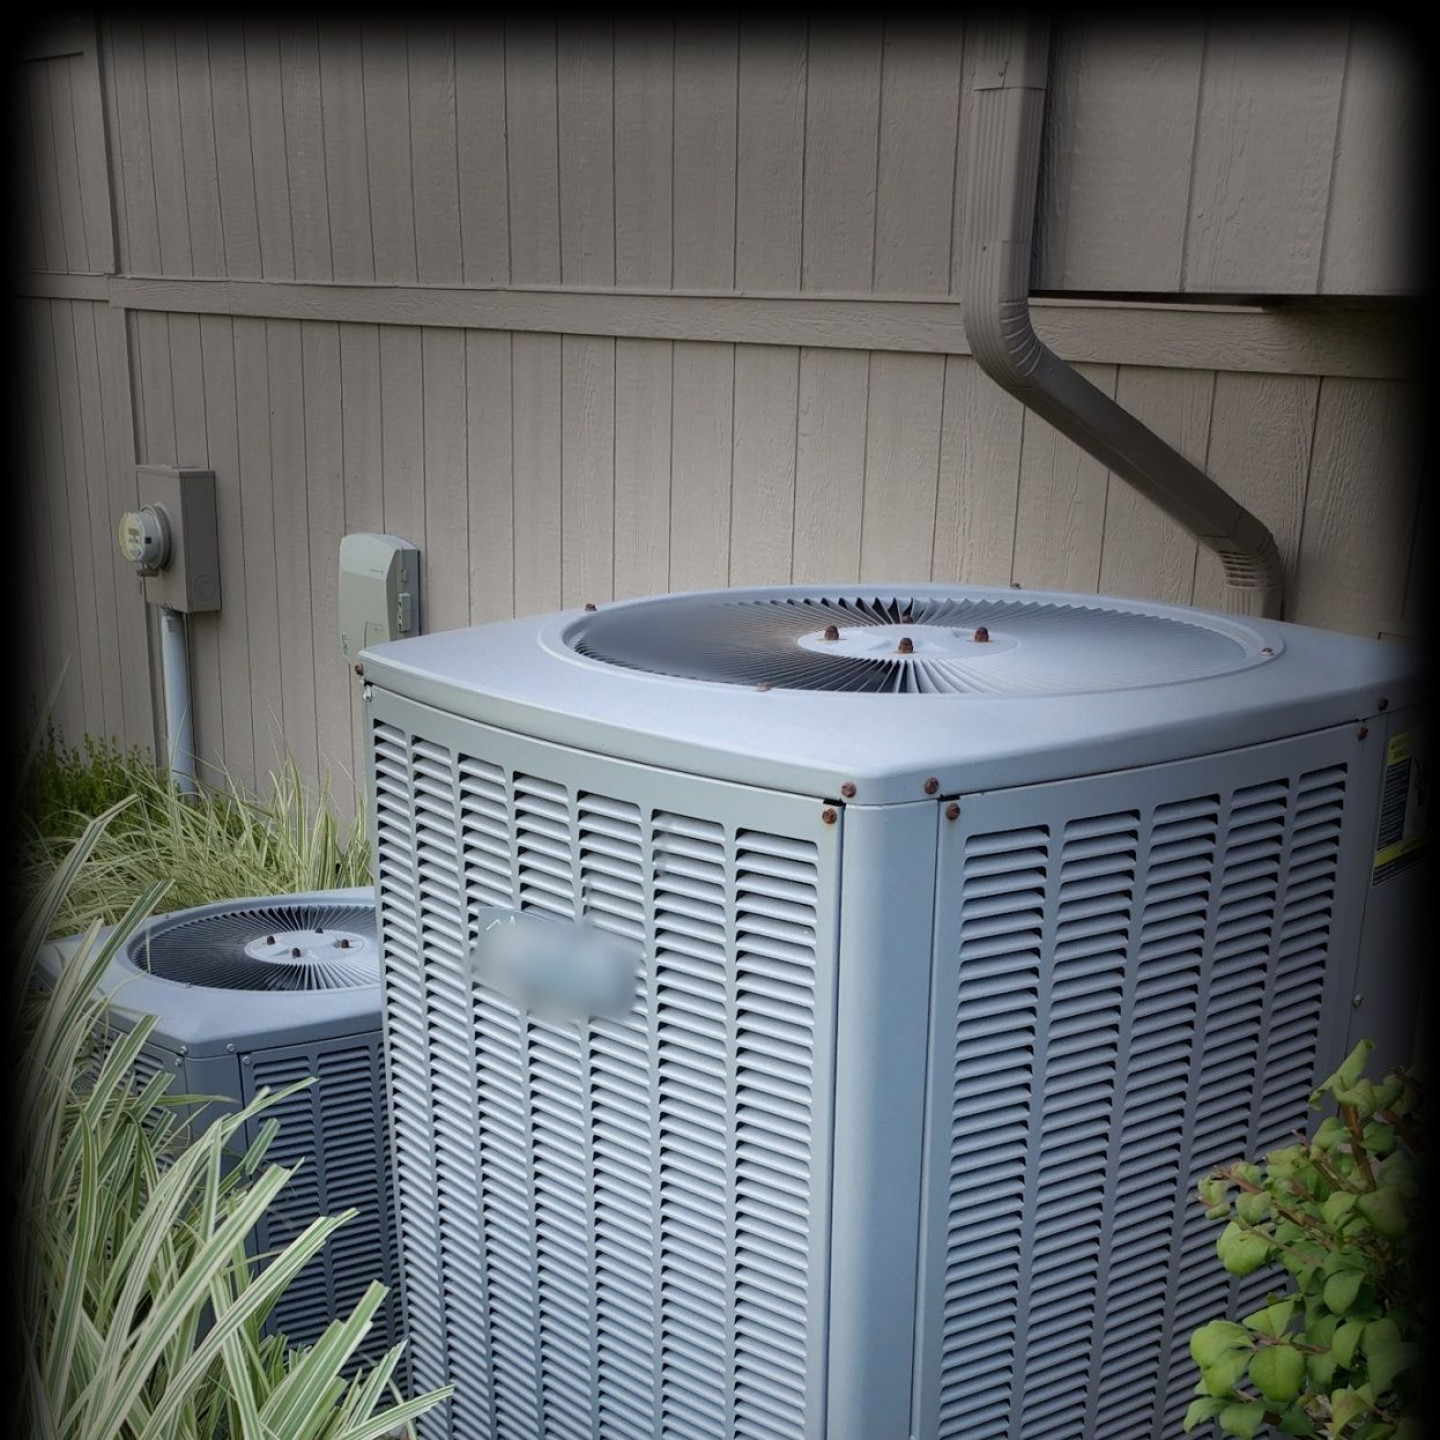 How can you tell it's time for an air conditioning repair or just as important preventative maintenance?